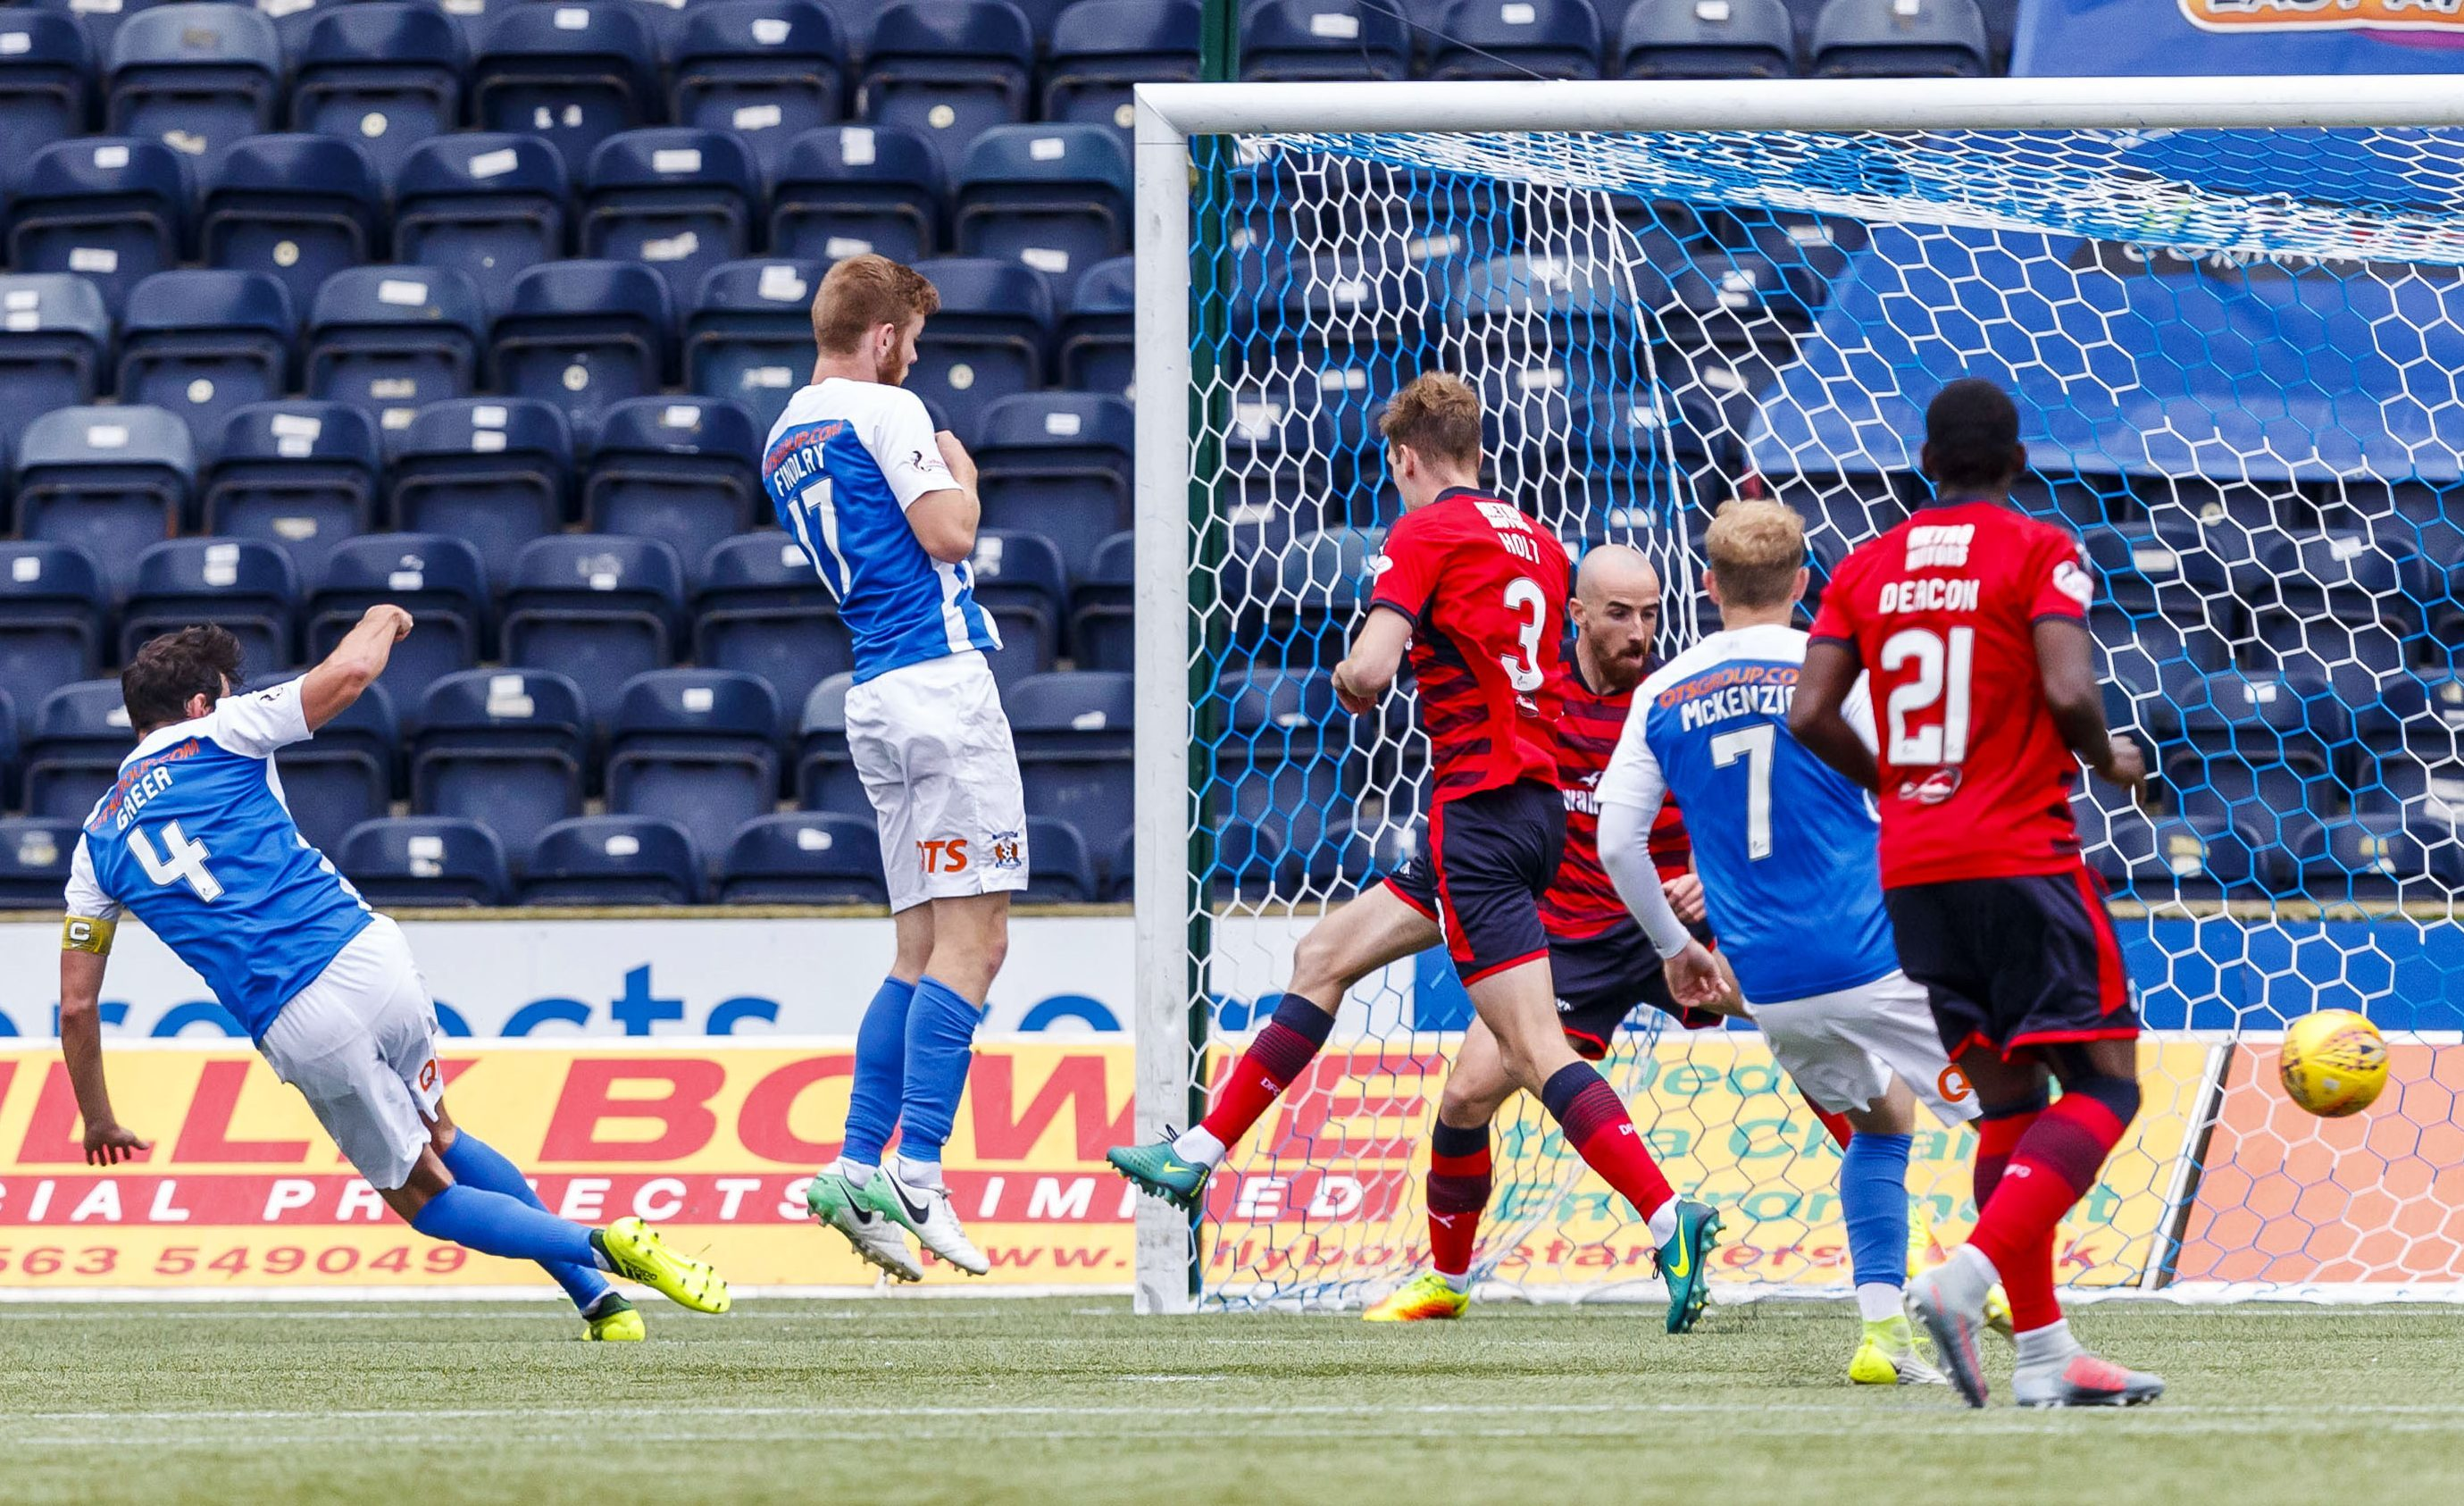 Dundee concede from a corner at Kilmarnock.